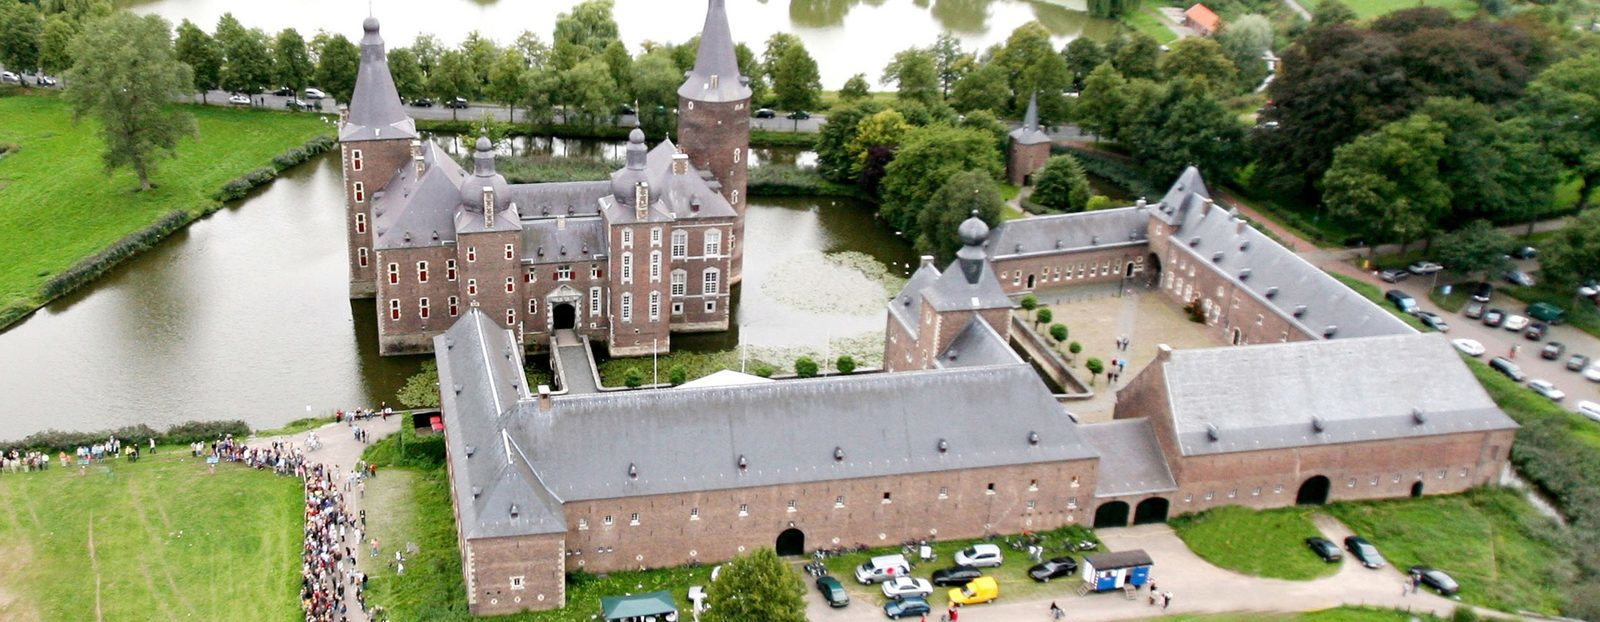 The Hoensbroek castle